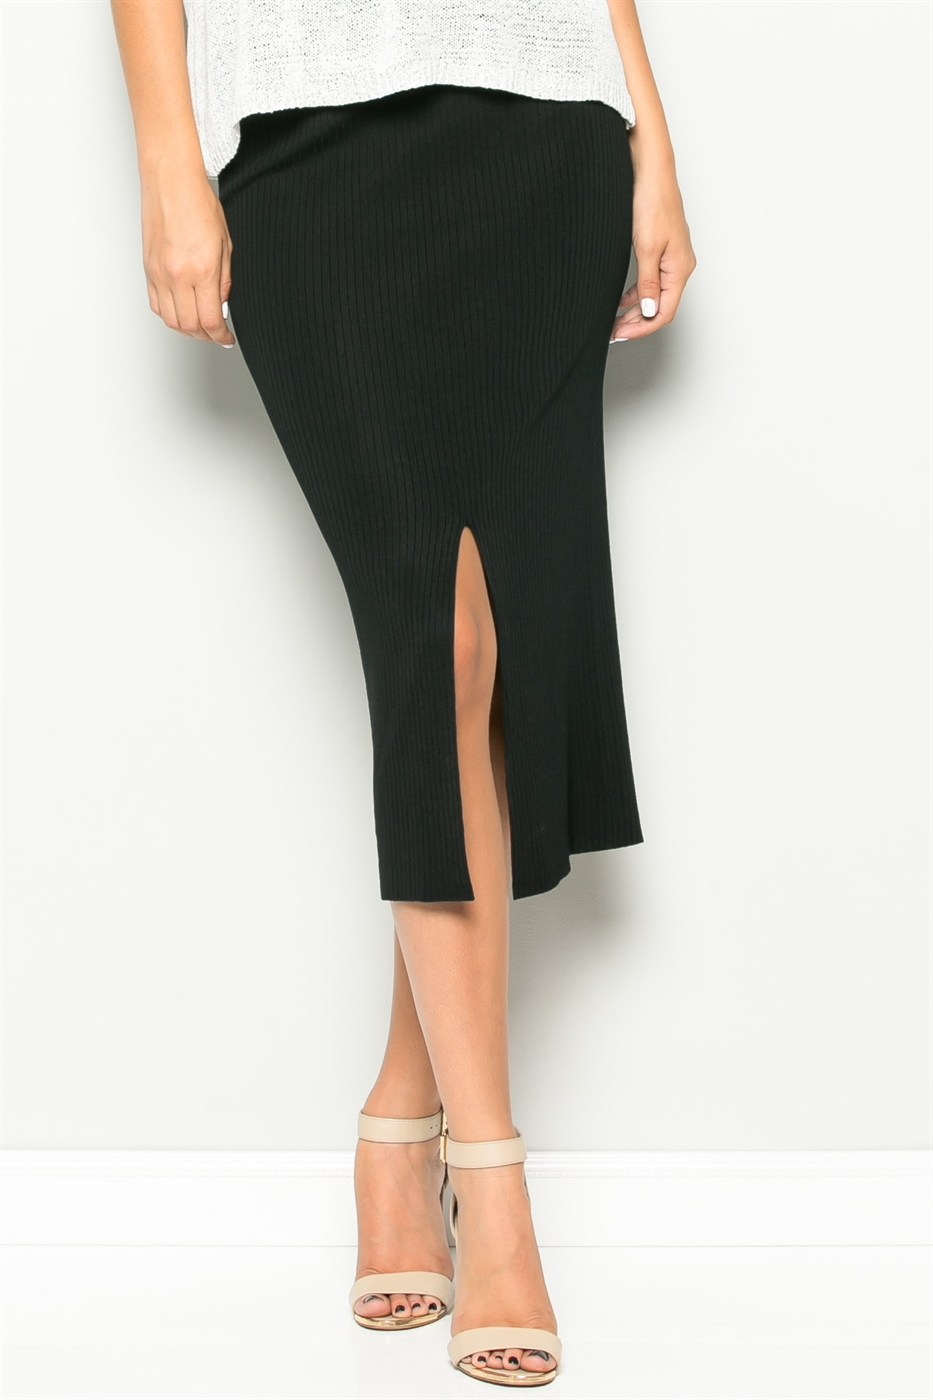 FITTED MIDDLE SLIT KNIT SKIRT - orangeshine.com